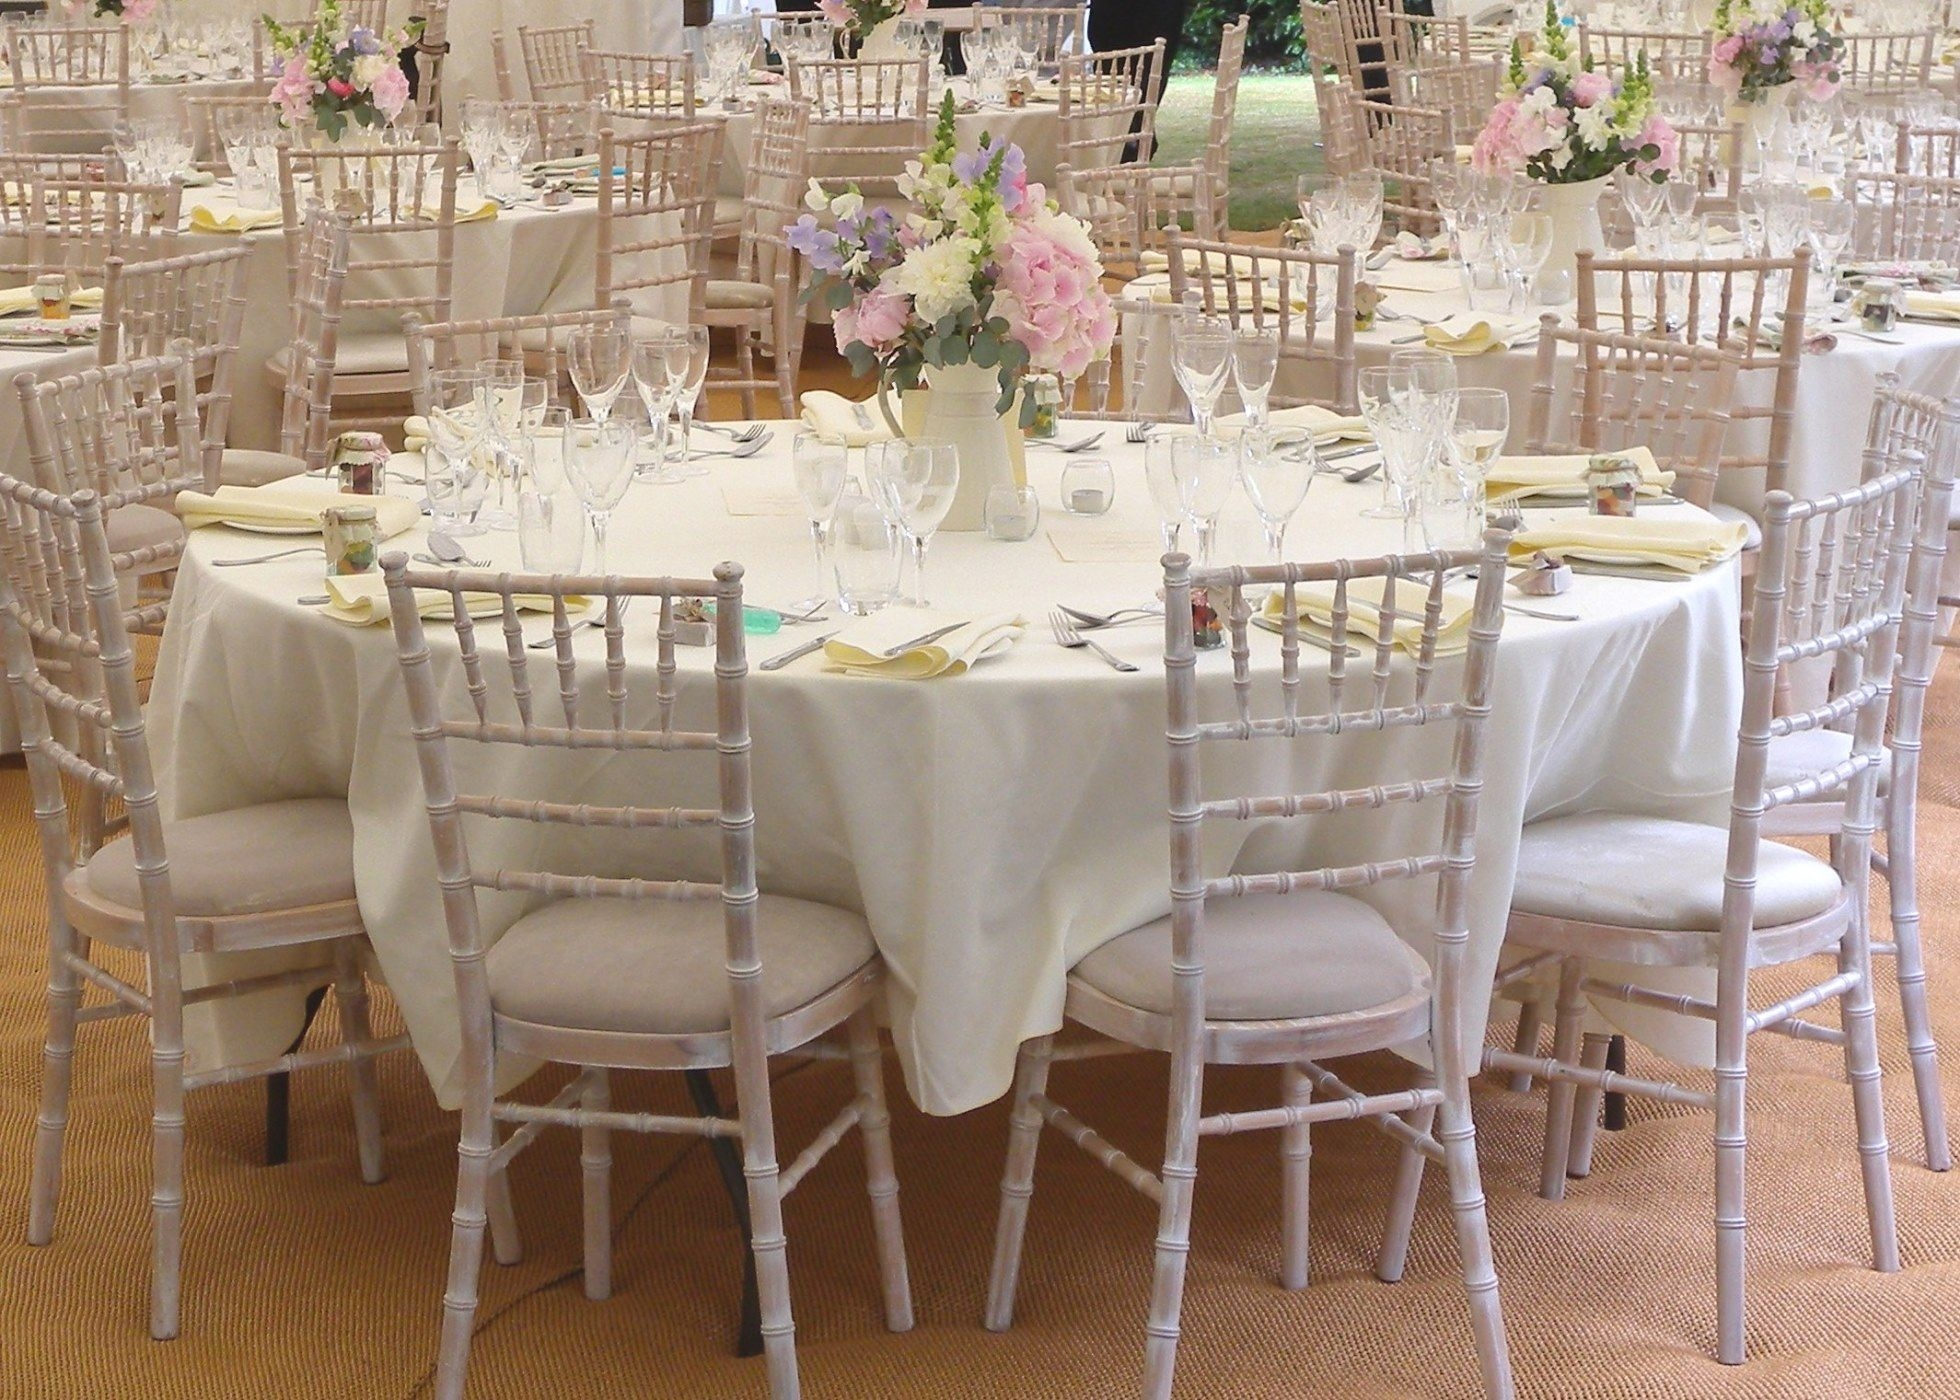 Interior shot of Wedding marquee table setting with Limewash Chiavari chairs and table centres with sweet pea flowers